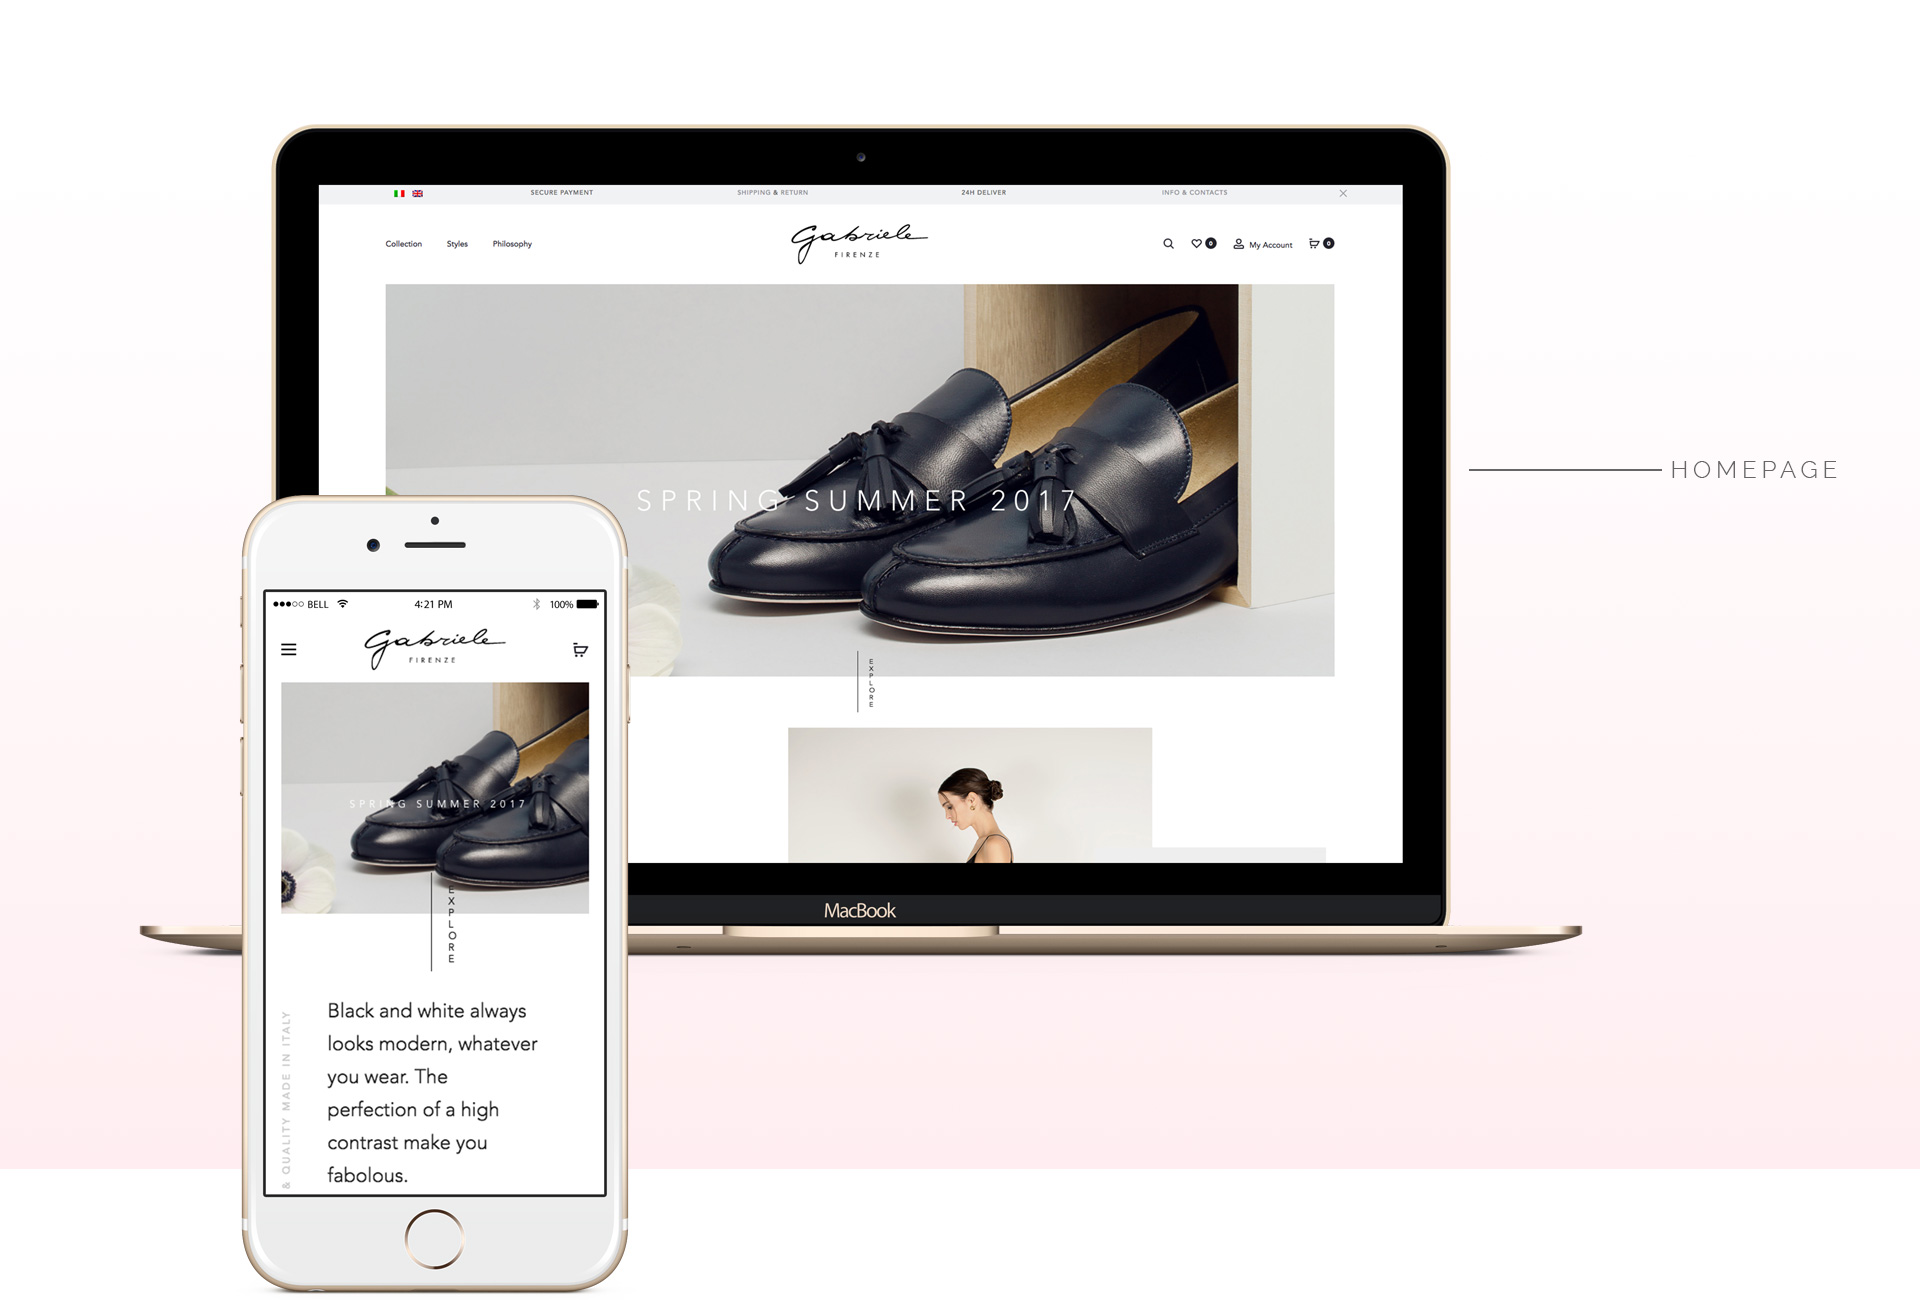 homepage-gabriele-firenze-shoes